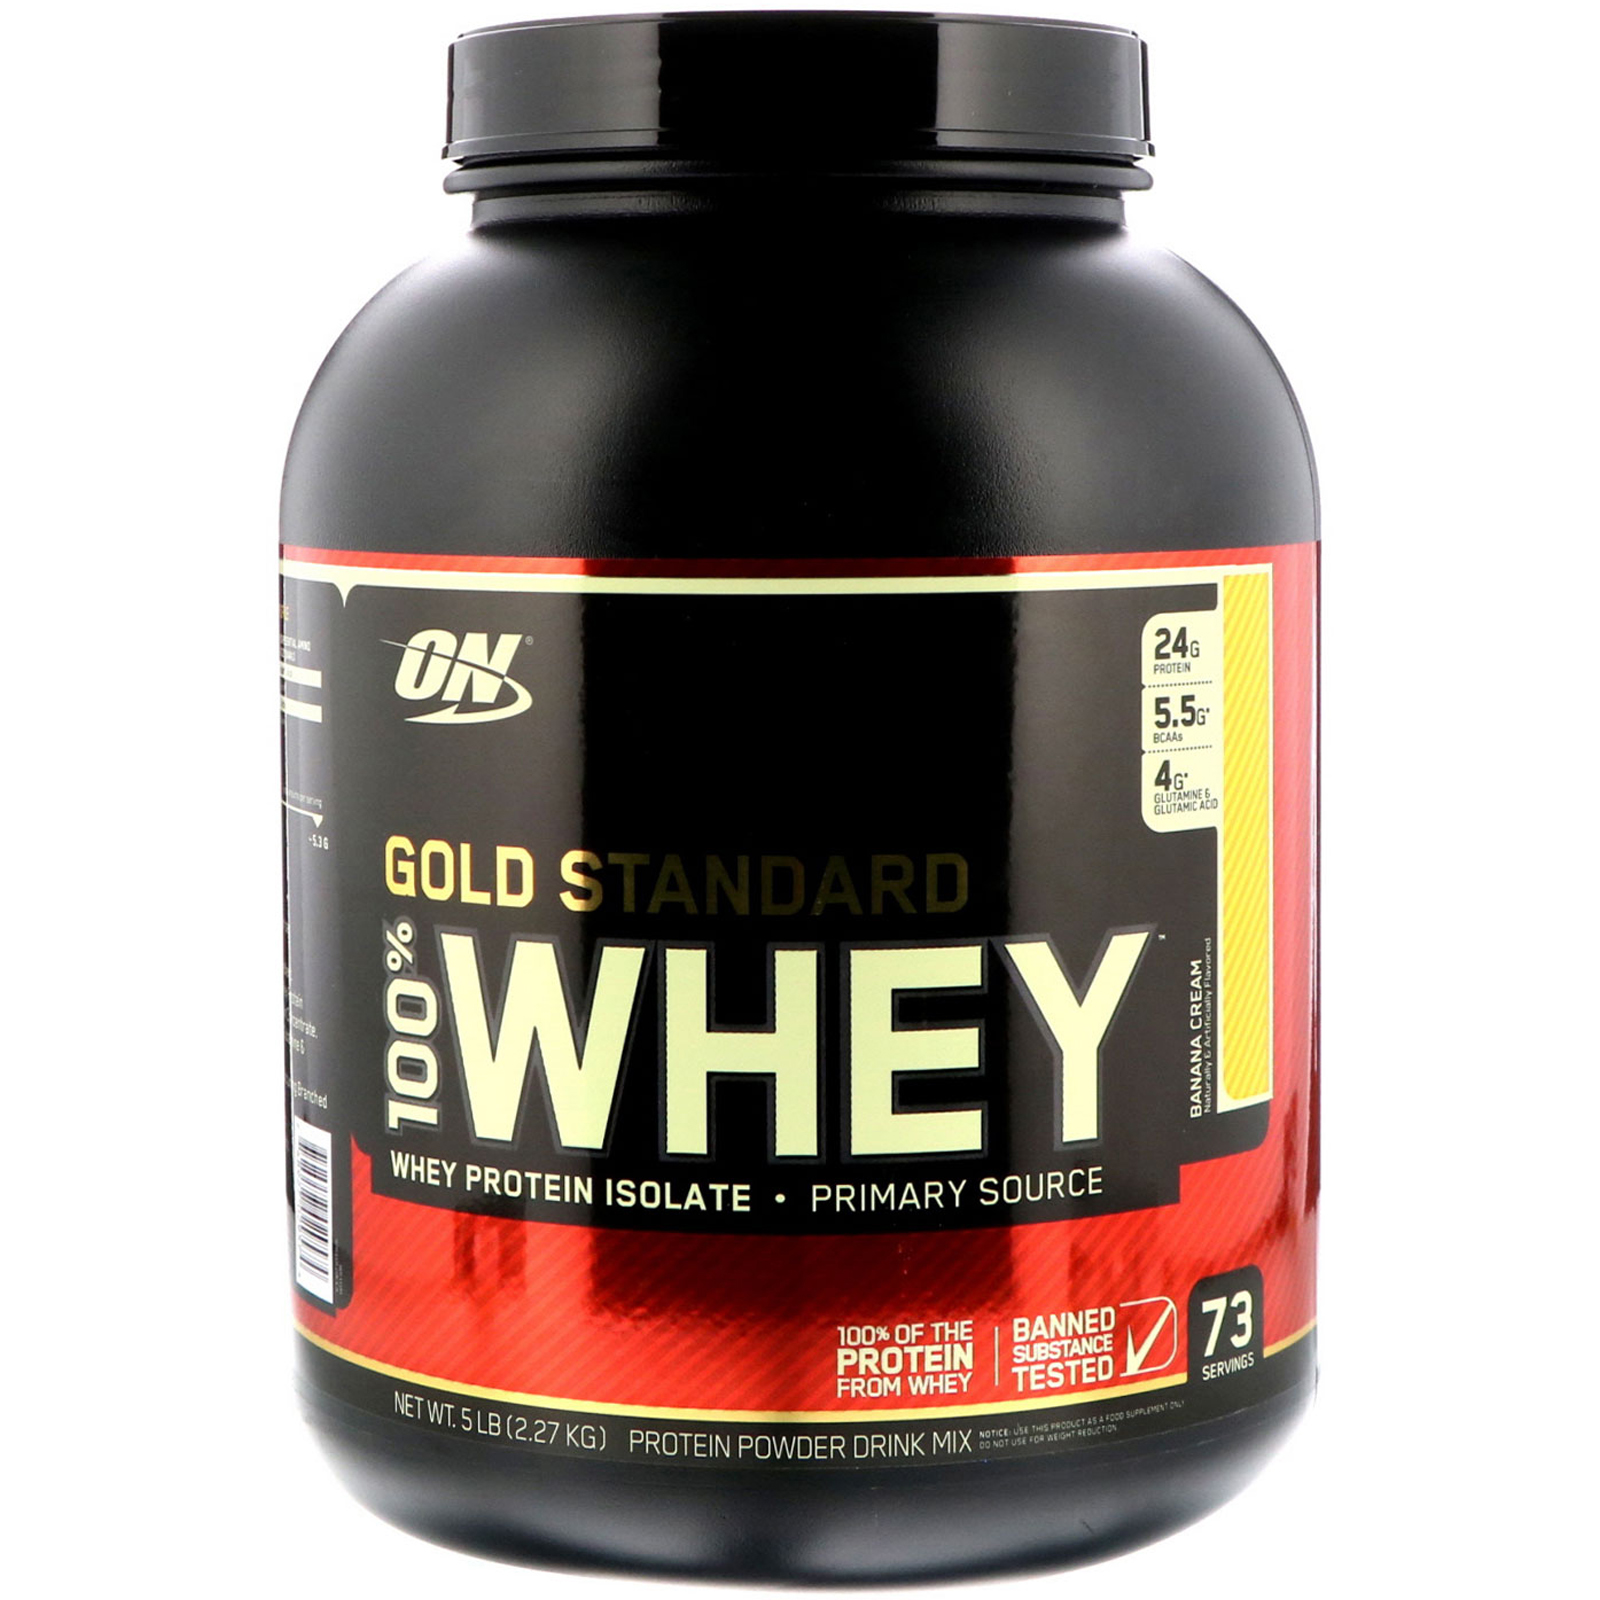 Optimum nutrition واي جولد ستاندارد Optimum nutrition موقع شركة Optimum Nutrition optimum nutrition opti-men Optimum nutrition Gold Standard Whey Protein Gold Standard Whey Optimum nutrition Creatine Amino acids optimum nutrition